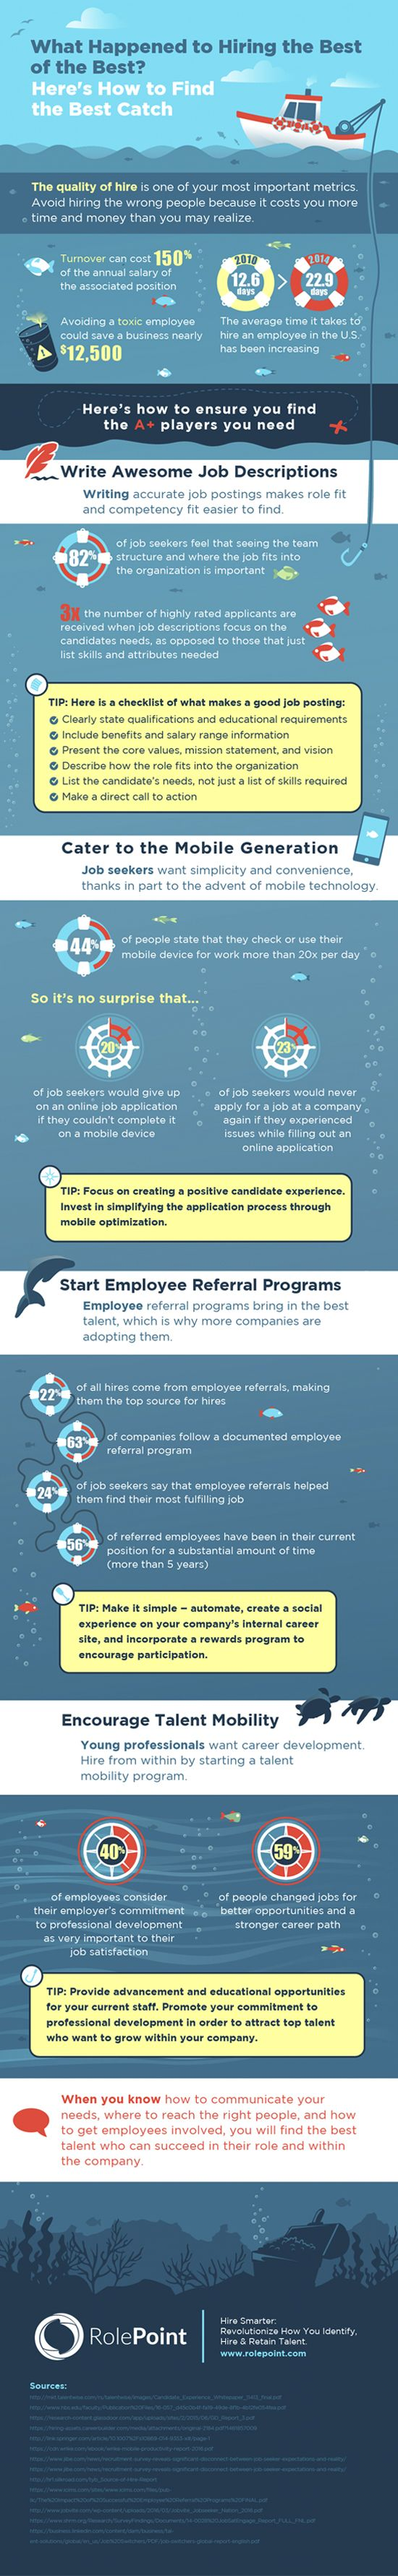 best images about recruiting retaining talent in the world of talent acquisition you need these expert insights >> check out